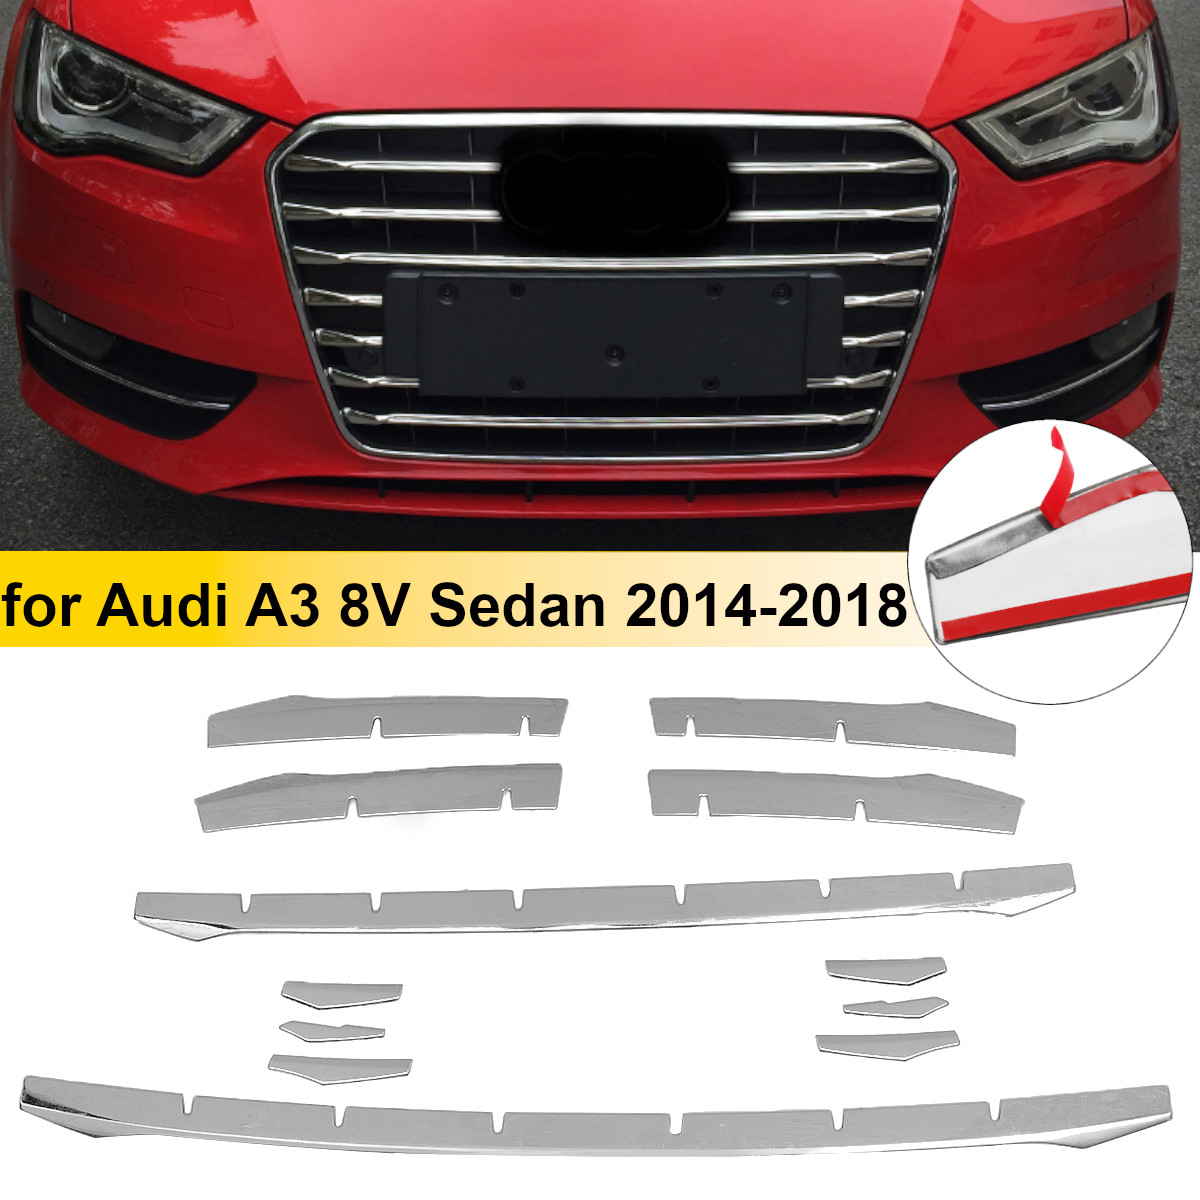 12pcs Stainless Steel Front Bumper Air Grille Grill Decor Cover Trim Car Front Fog Lamp Strips For <font><b>Audi</b></font> <font><b>A3</b></font> <font><b>8v</b></font> <font><b>Sedan</b></font> 2014-2016 image